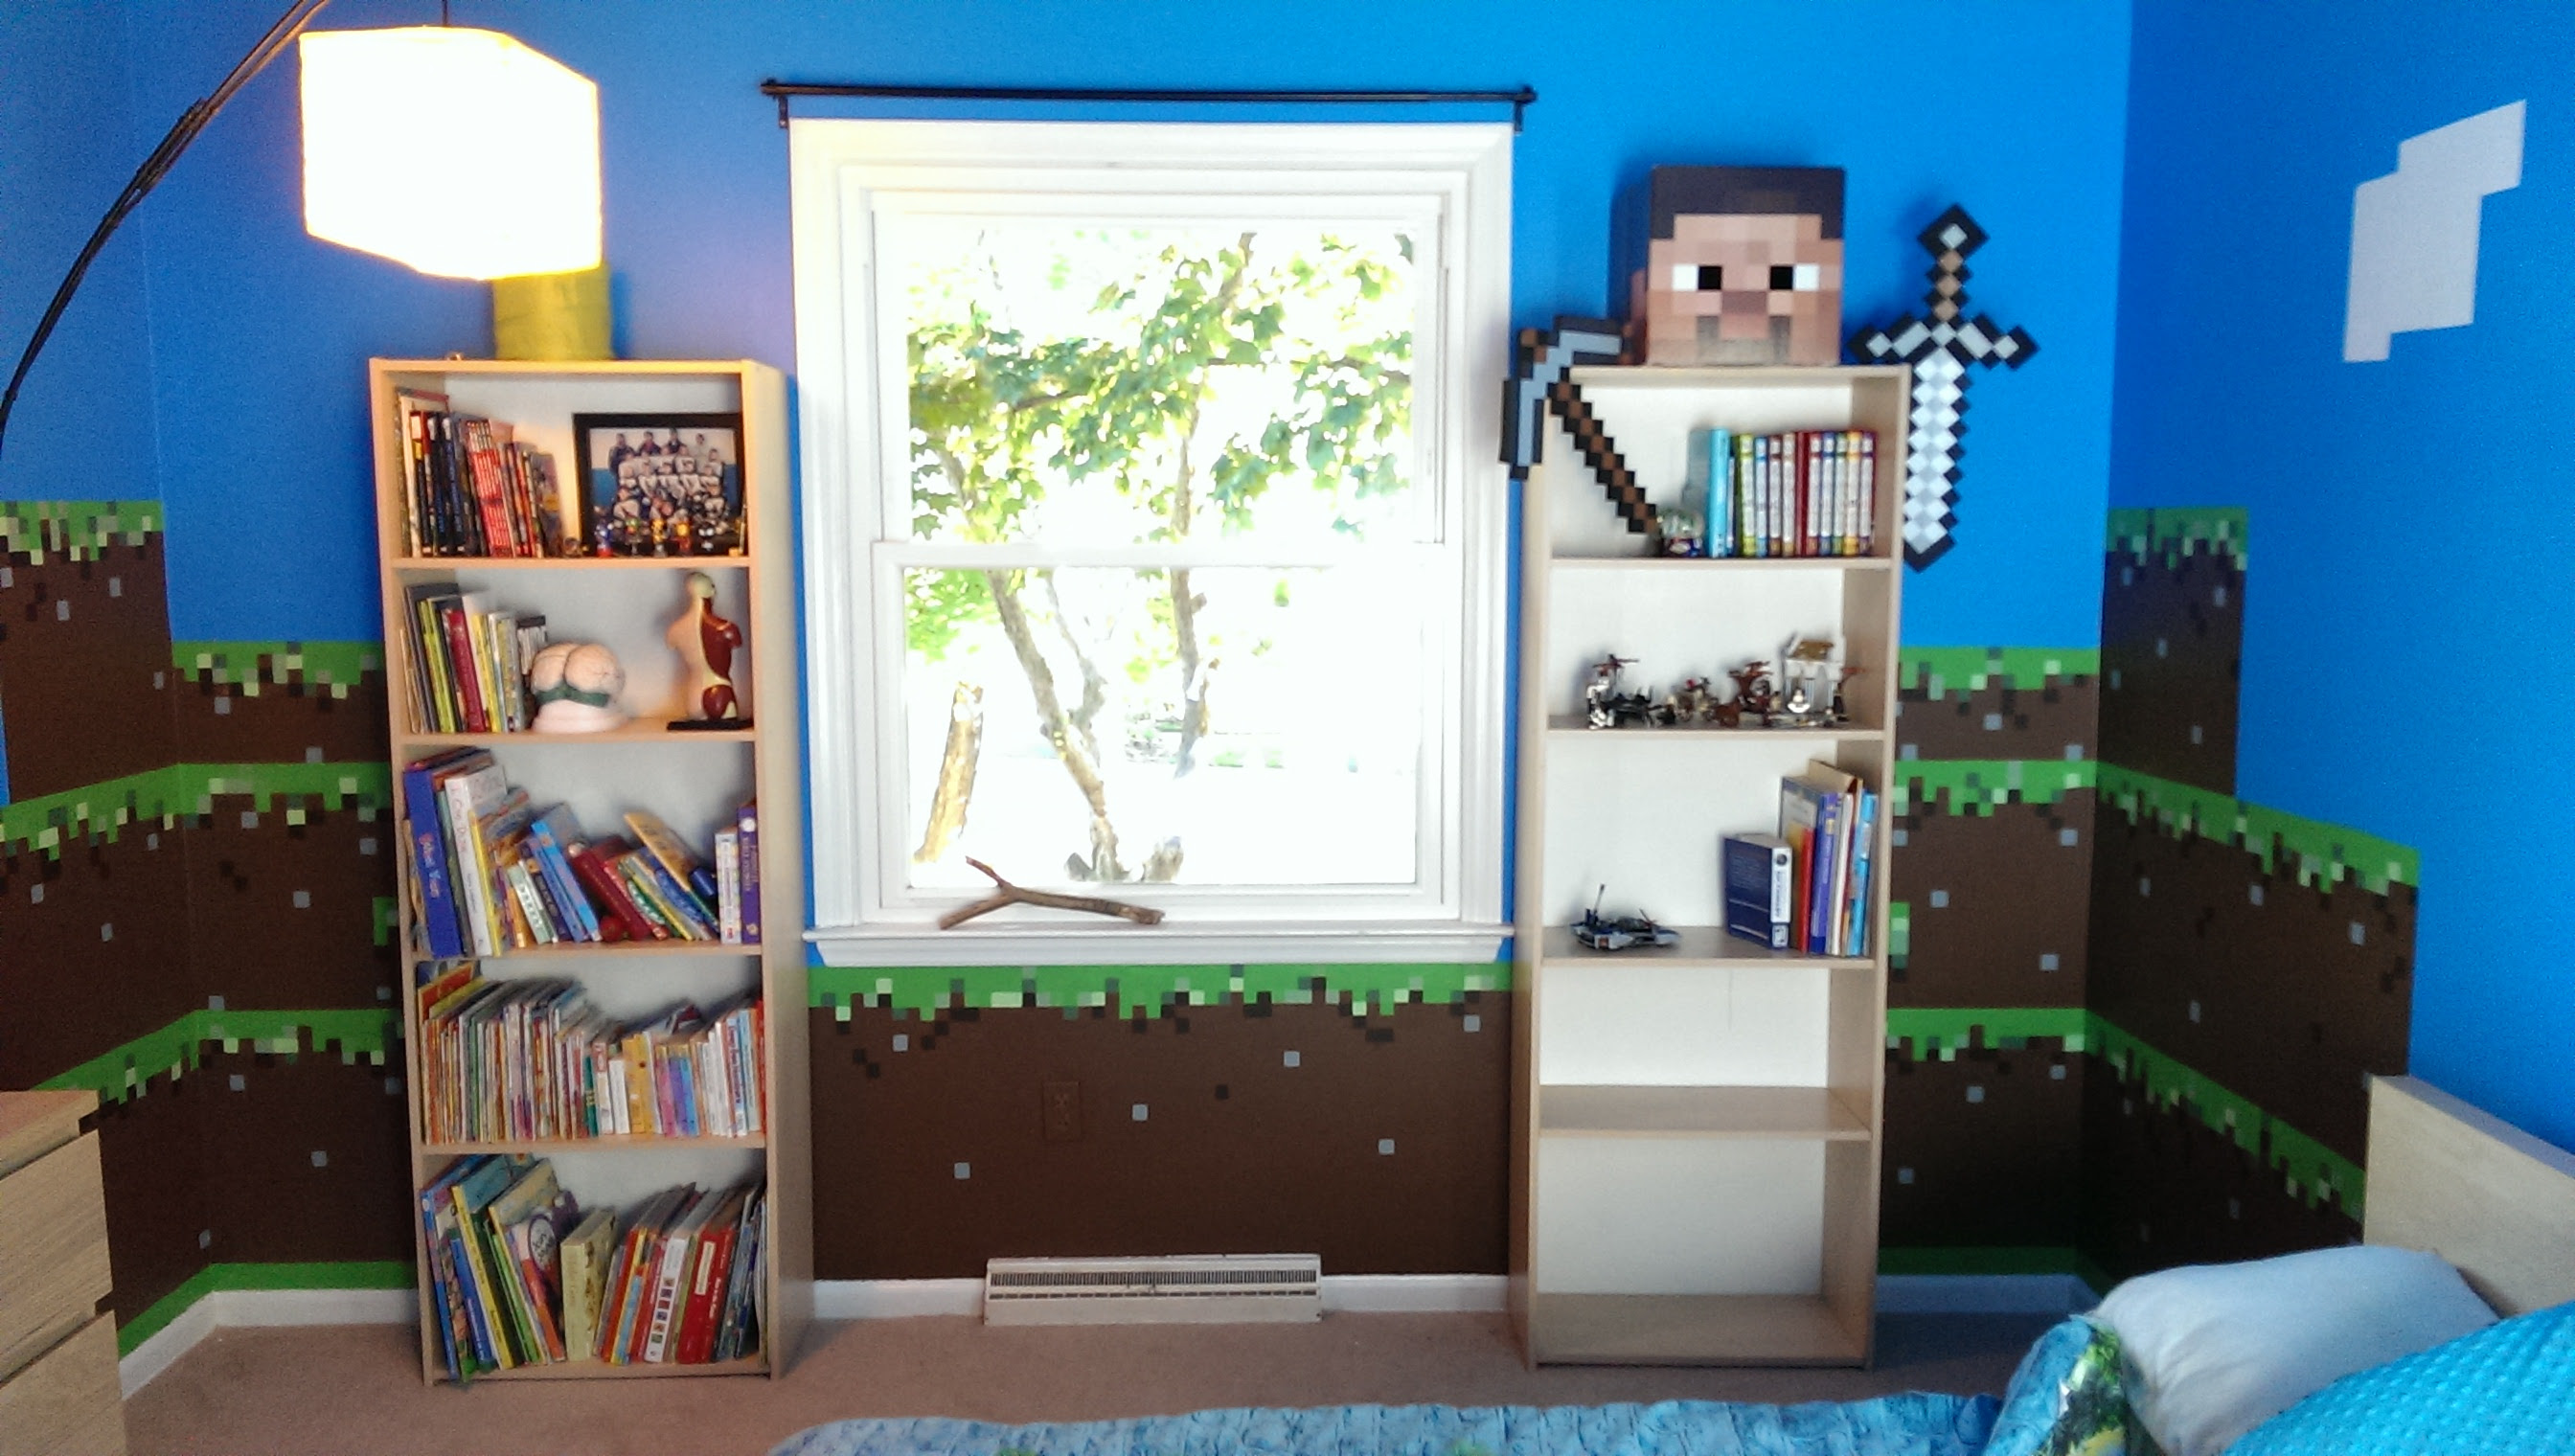 Need Ideas For Real Life Minecraft Design For Room Discussion